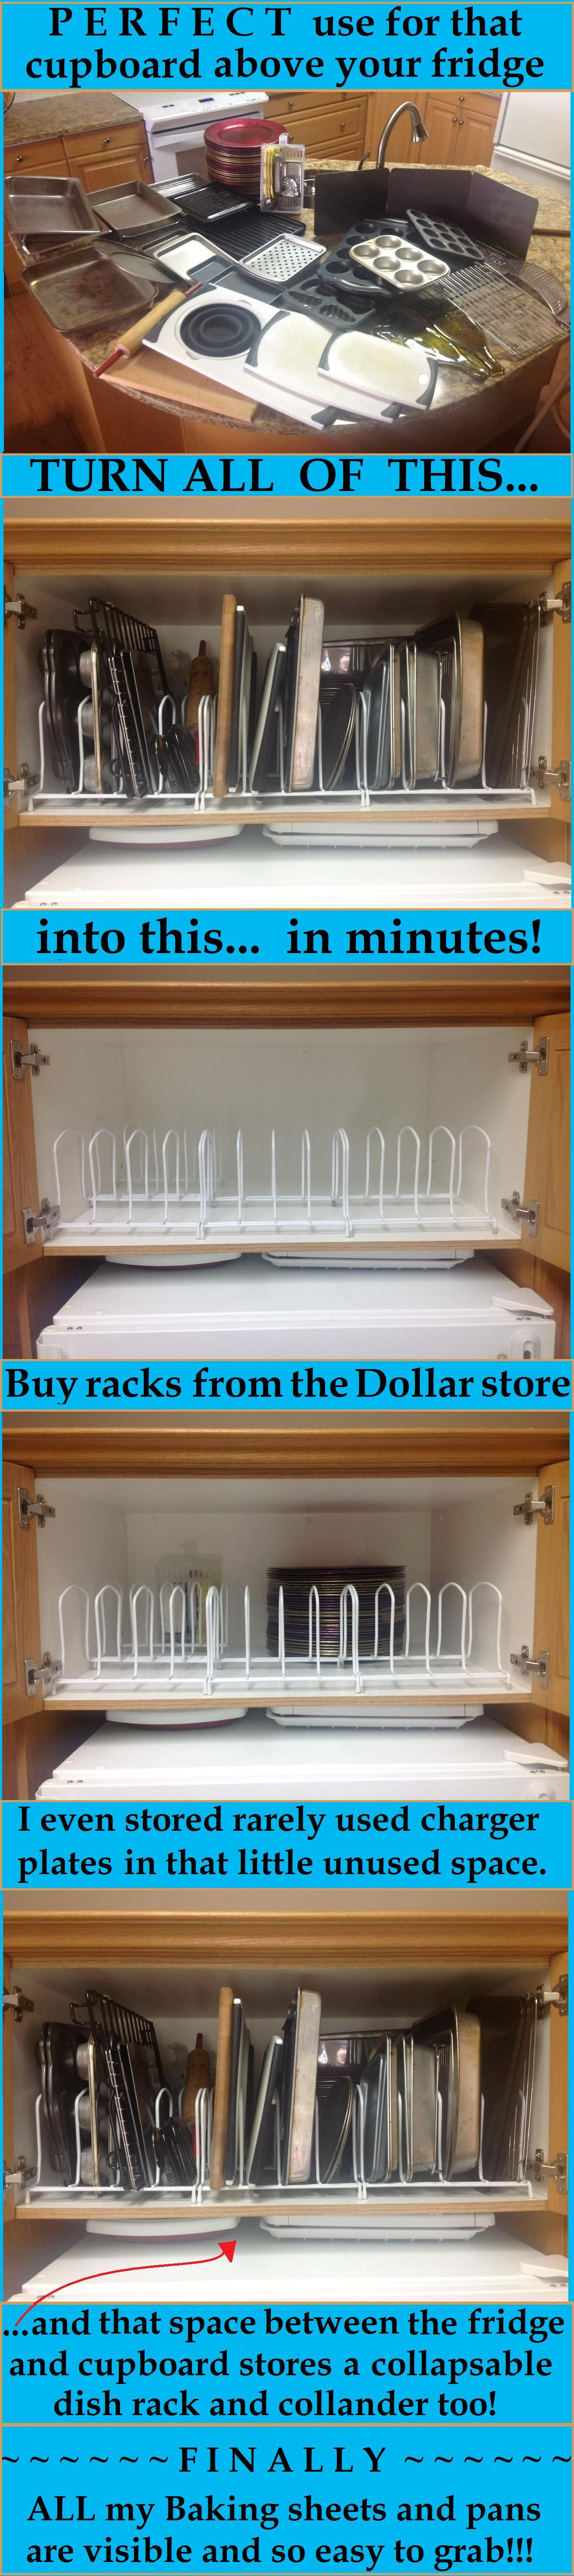 Dollar store dish racks to separate the pans and lids in a cabinet on lowe's kitchen ideas, dollar tree decorating, dollar tree kitchen utensils, dollar tree bedroom, dollar tree general, dollar tree budget, dollar tree storage, dollar tree kitchen supplies, dollar tree organization, dollar tree kitchen backsplash, ikea kitchen ideas, dollar tree kitchen makeover, dollar tree design, dollar tree baby, dollar tree valentine's day, dollar tree teacher stuff, dollar tree thanksgiving, dollar tree construction, dollar tree accessories, dollar tree diy,